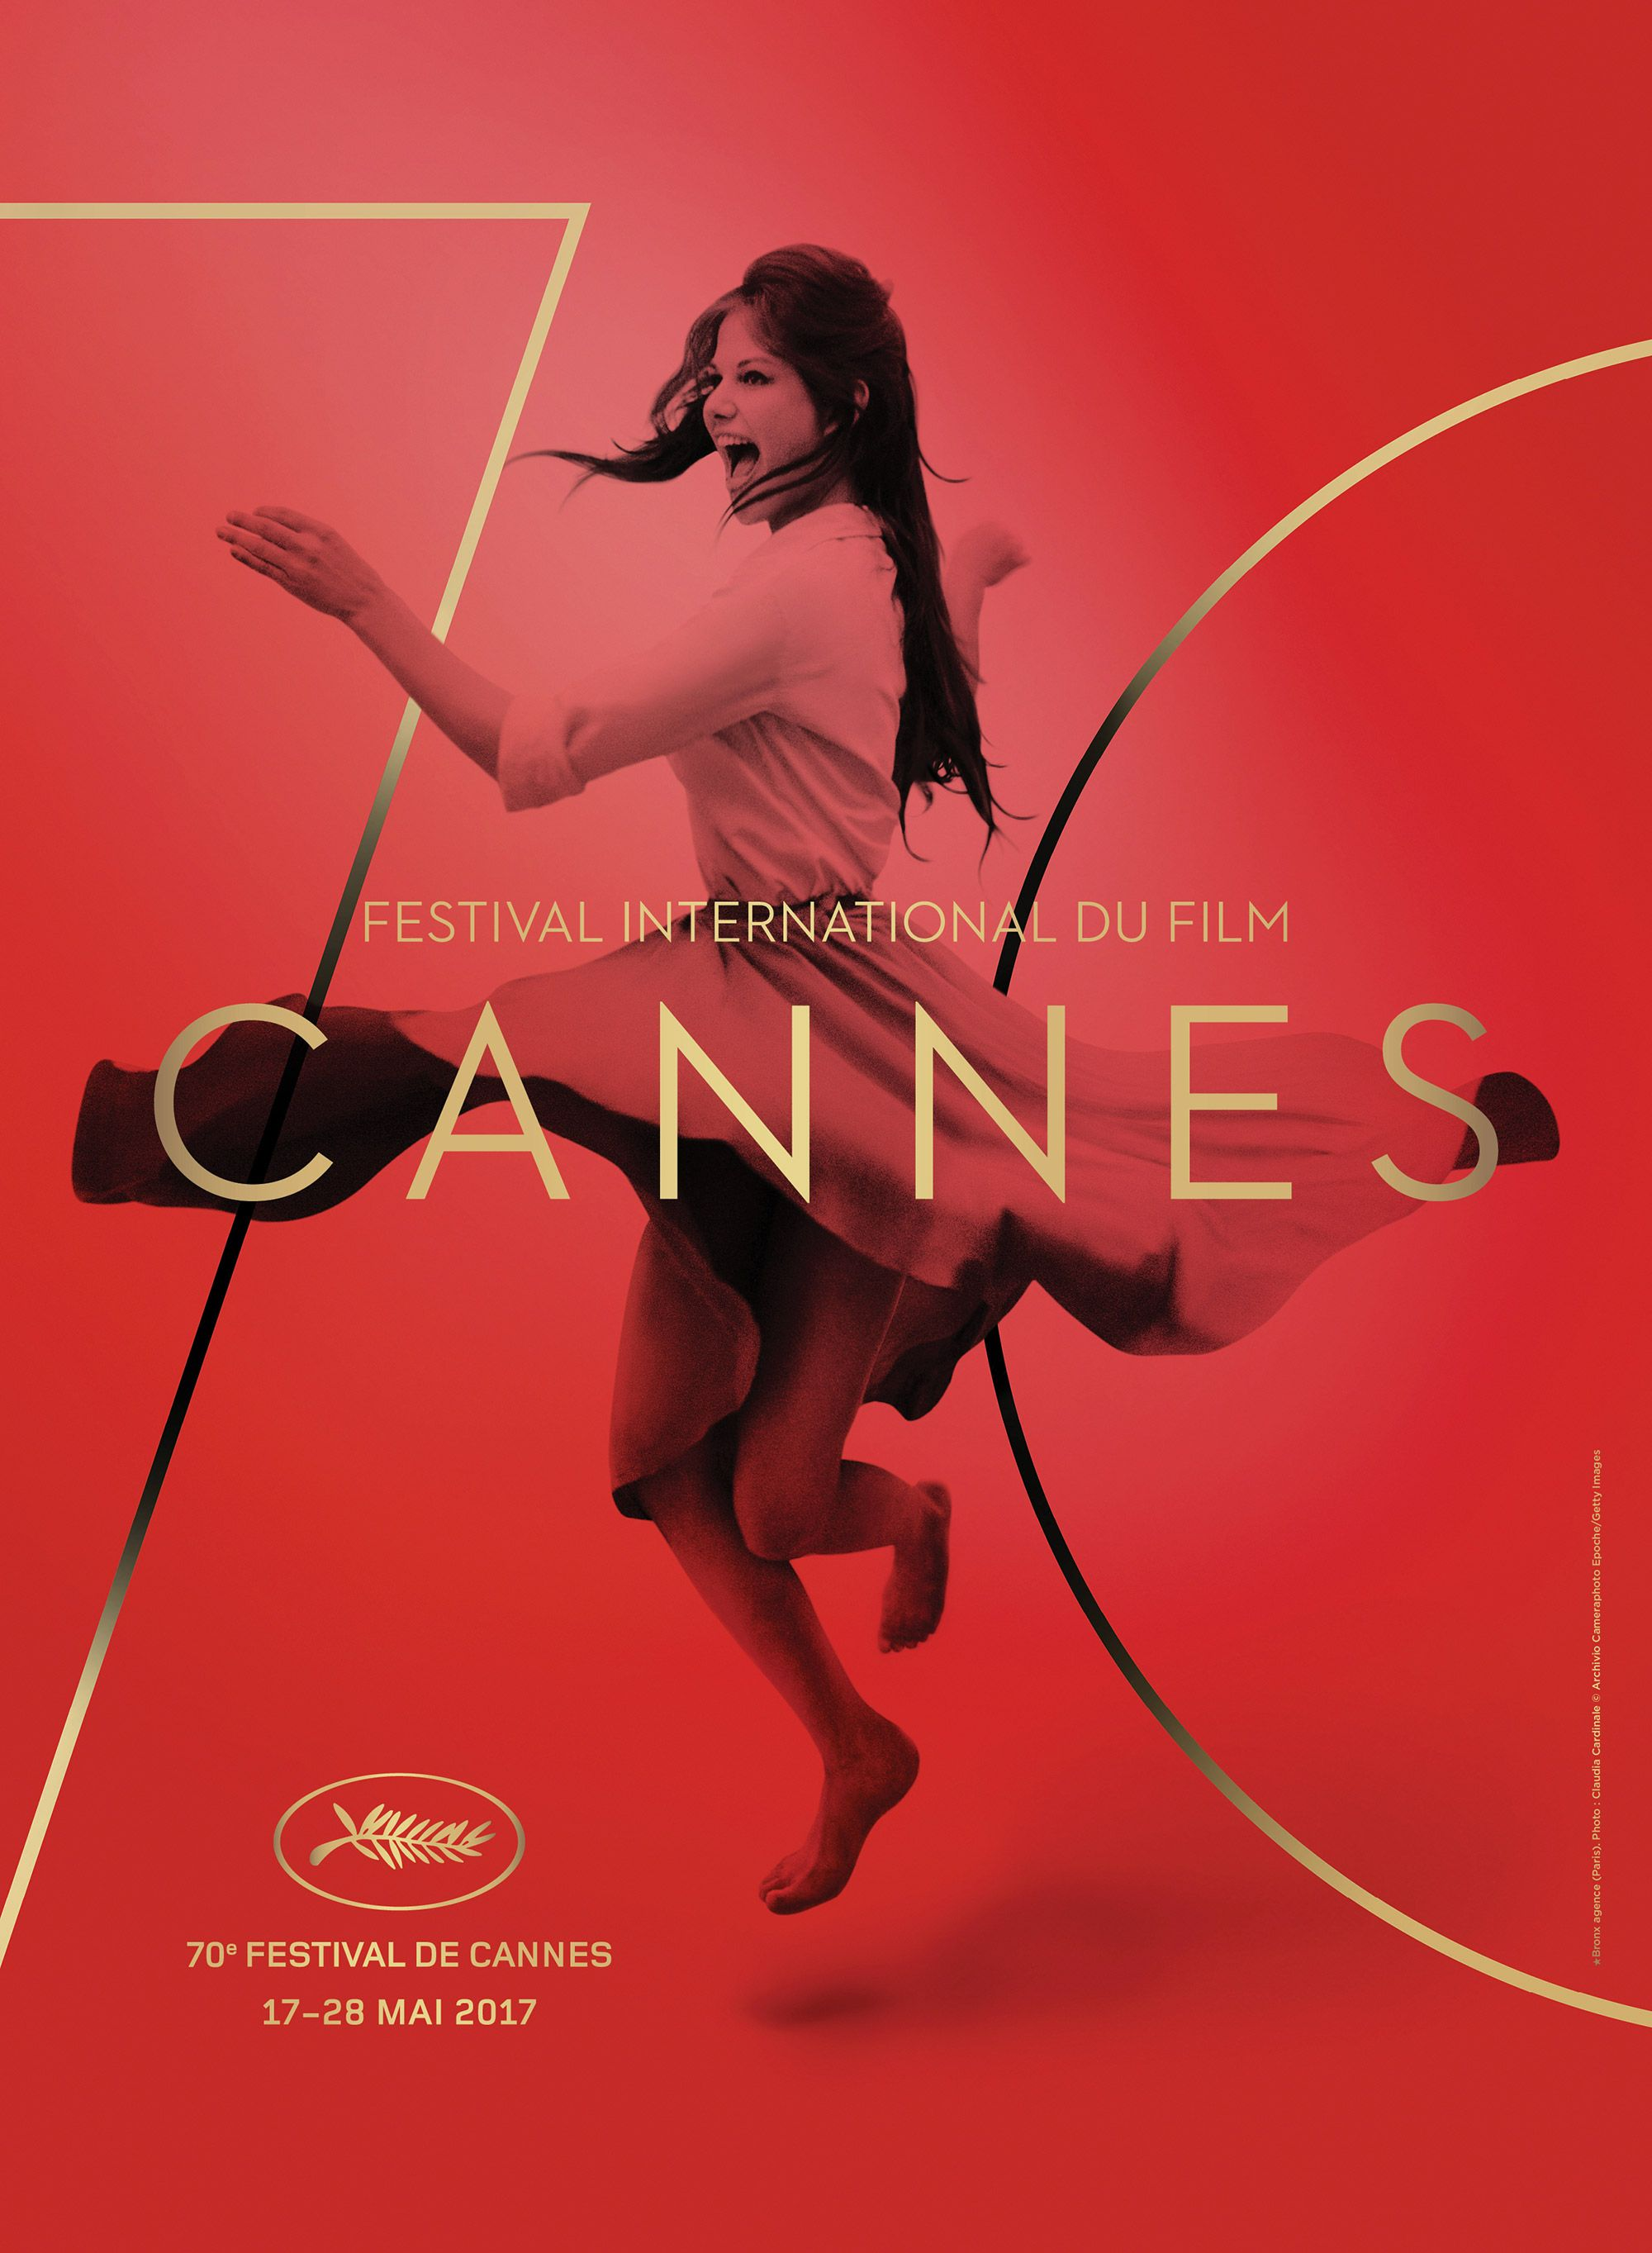 cannes-festival-2017-poster-vertical